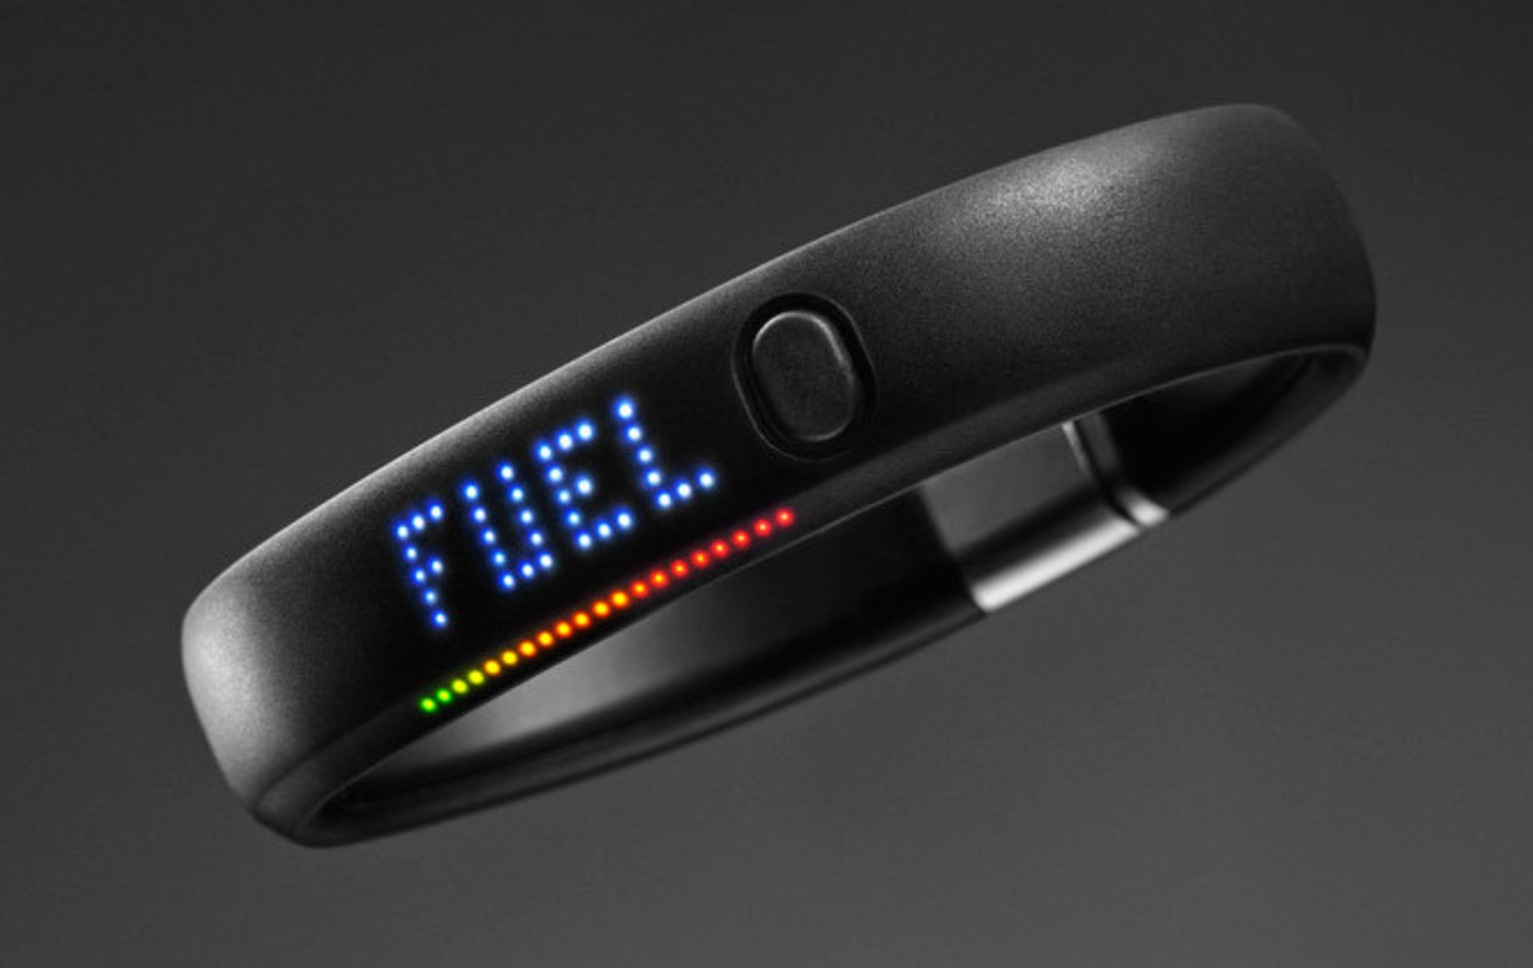 Apple, Nike Fitness Band With 'Stealth' Look in the Works ...